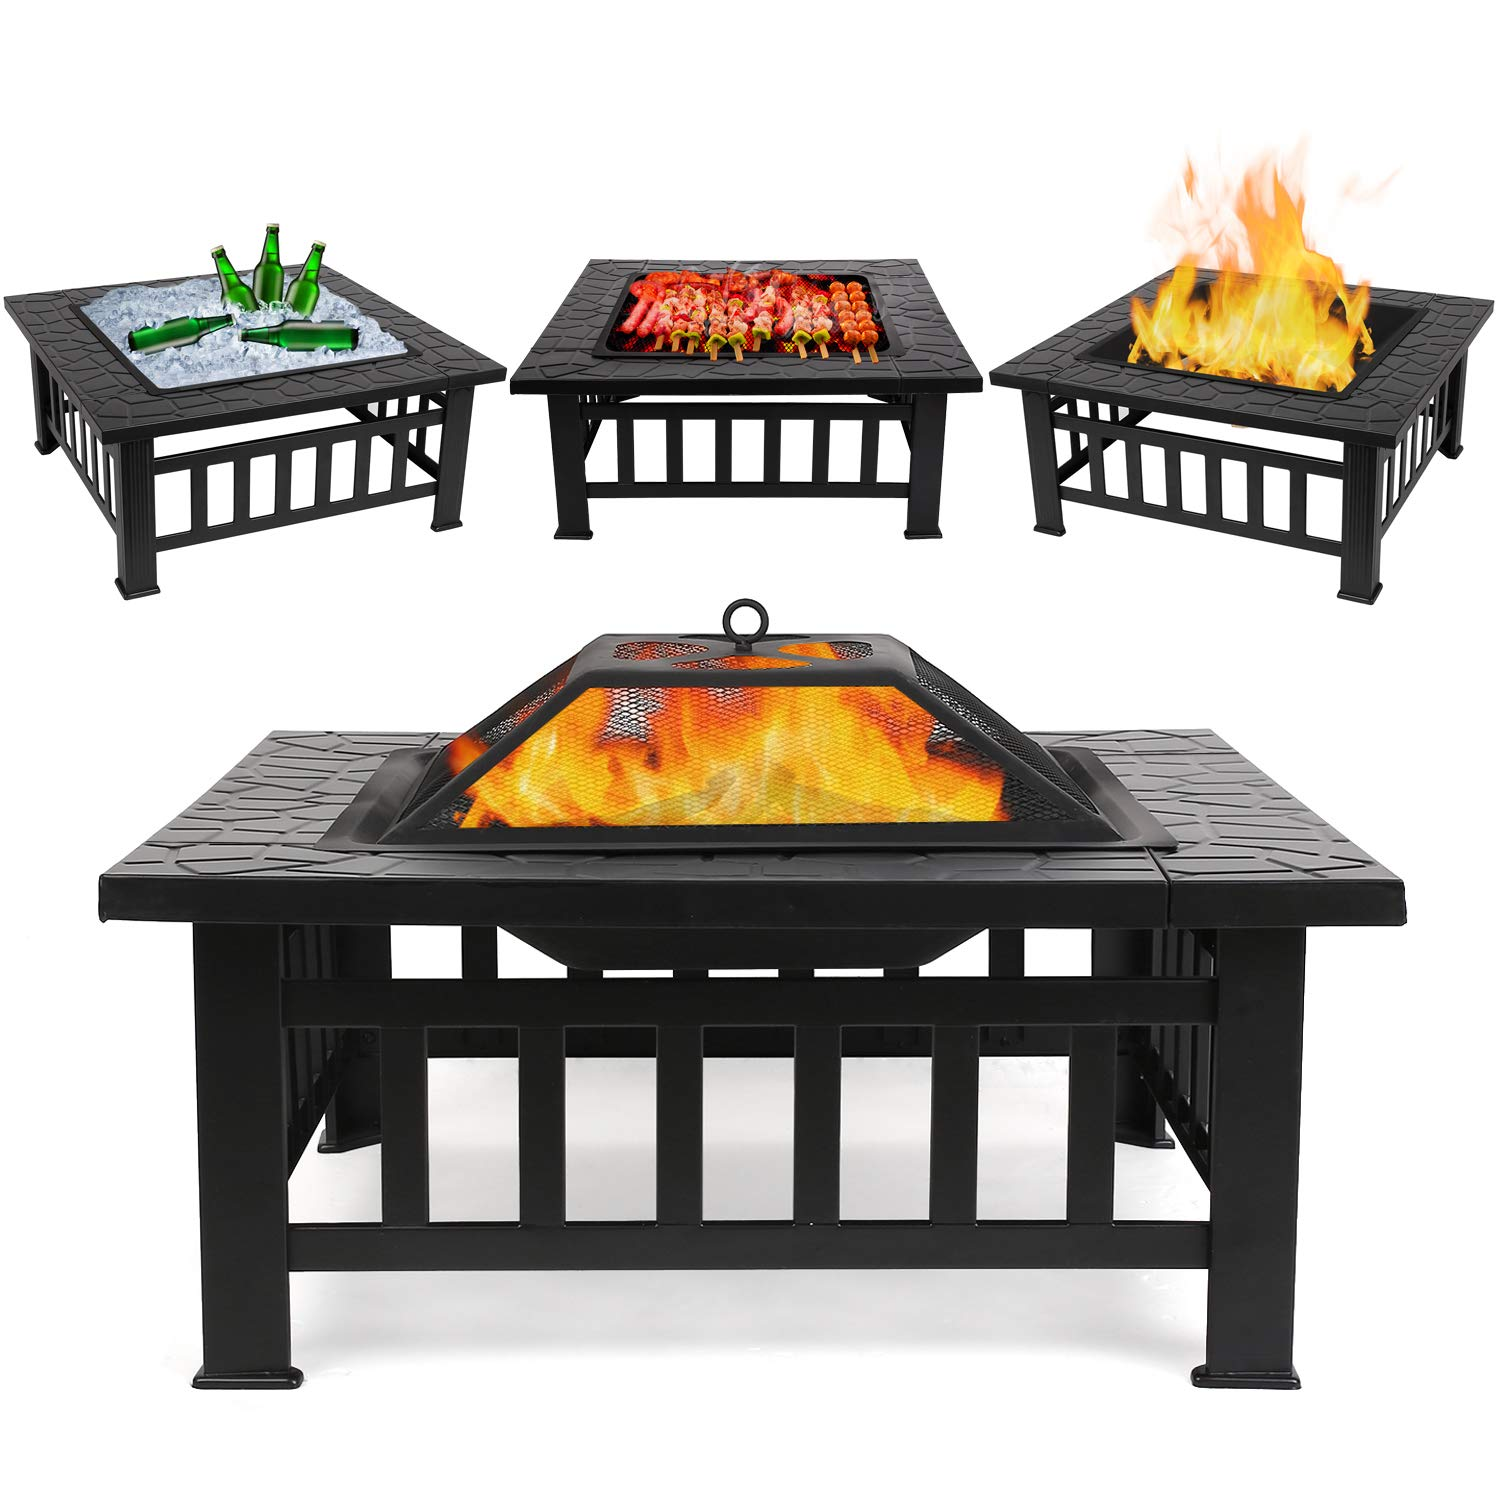 KY8181FP 32 inch Outdoor Square Metal Firepit Backyard Patio Garden Stove Wood Burning BBQ Outdoor Fire Pit